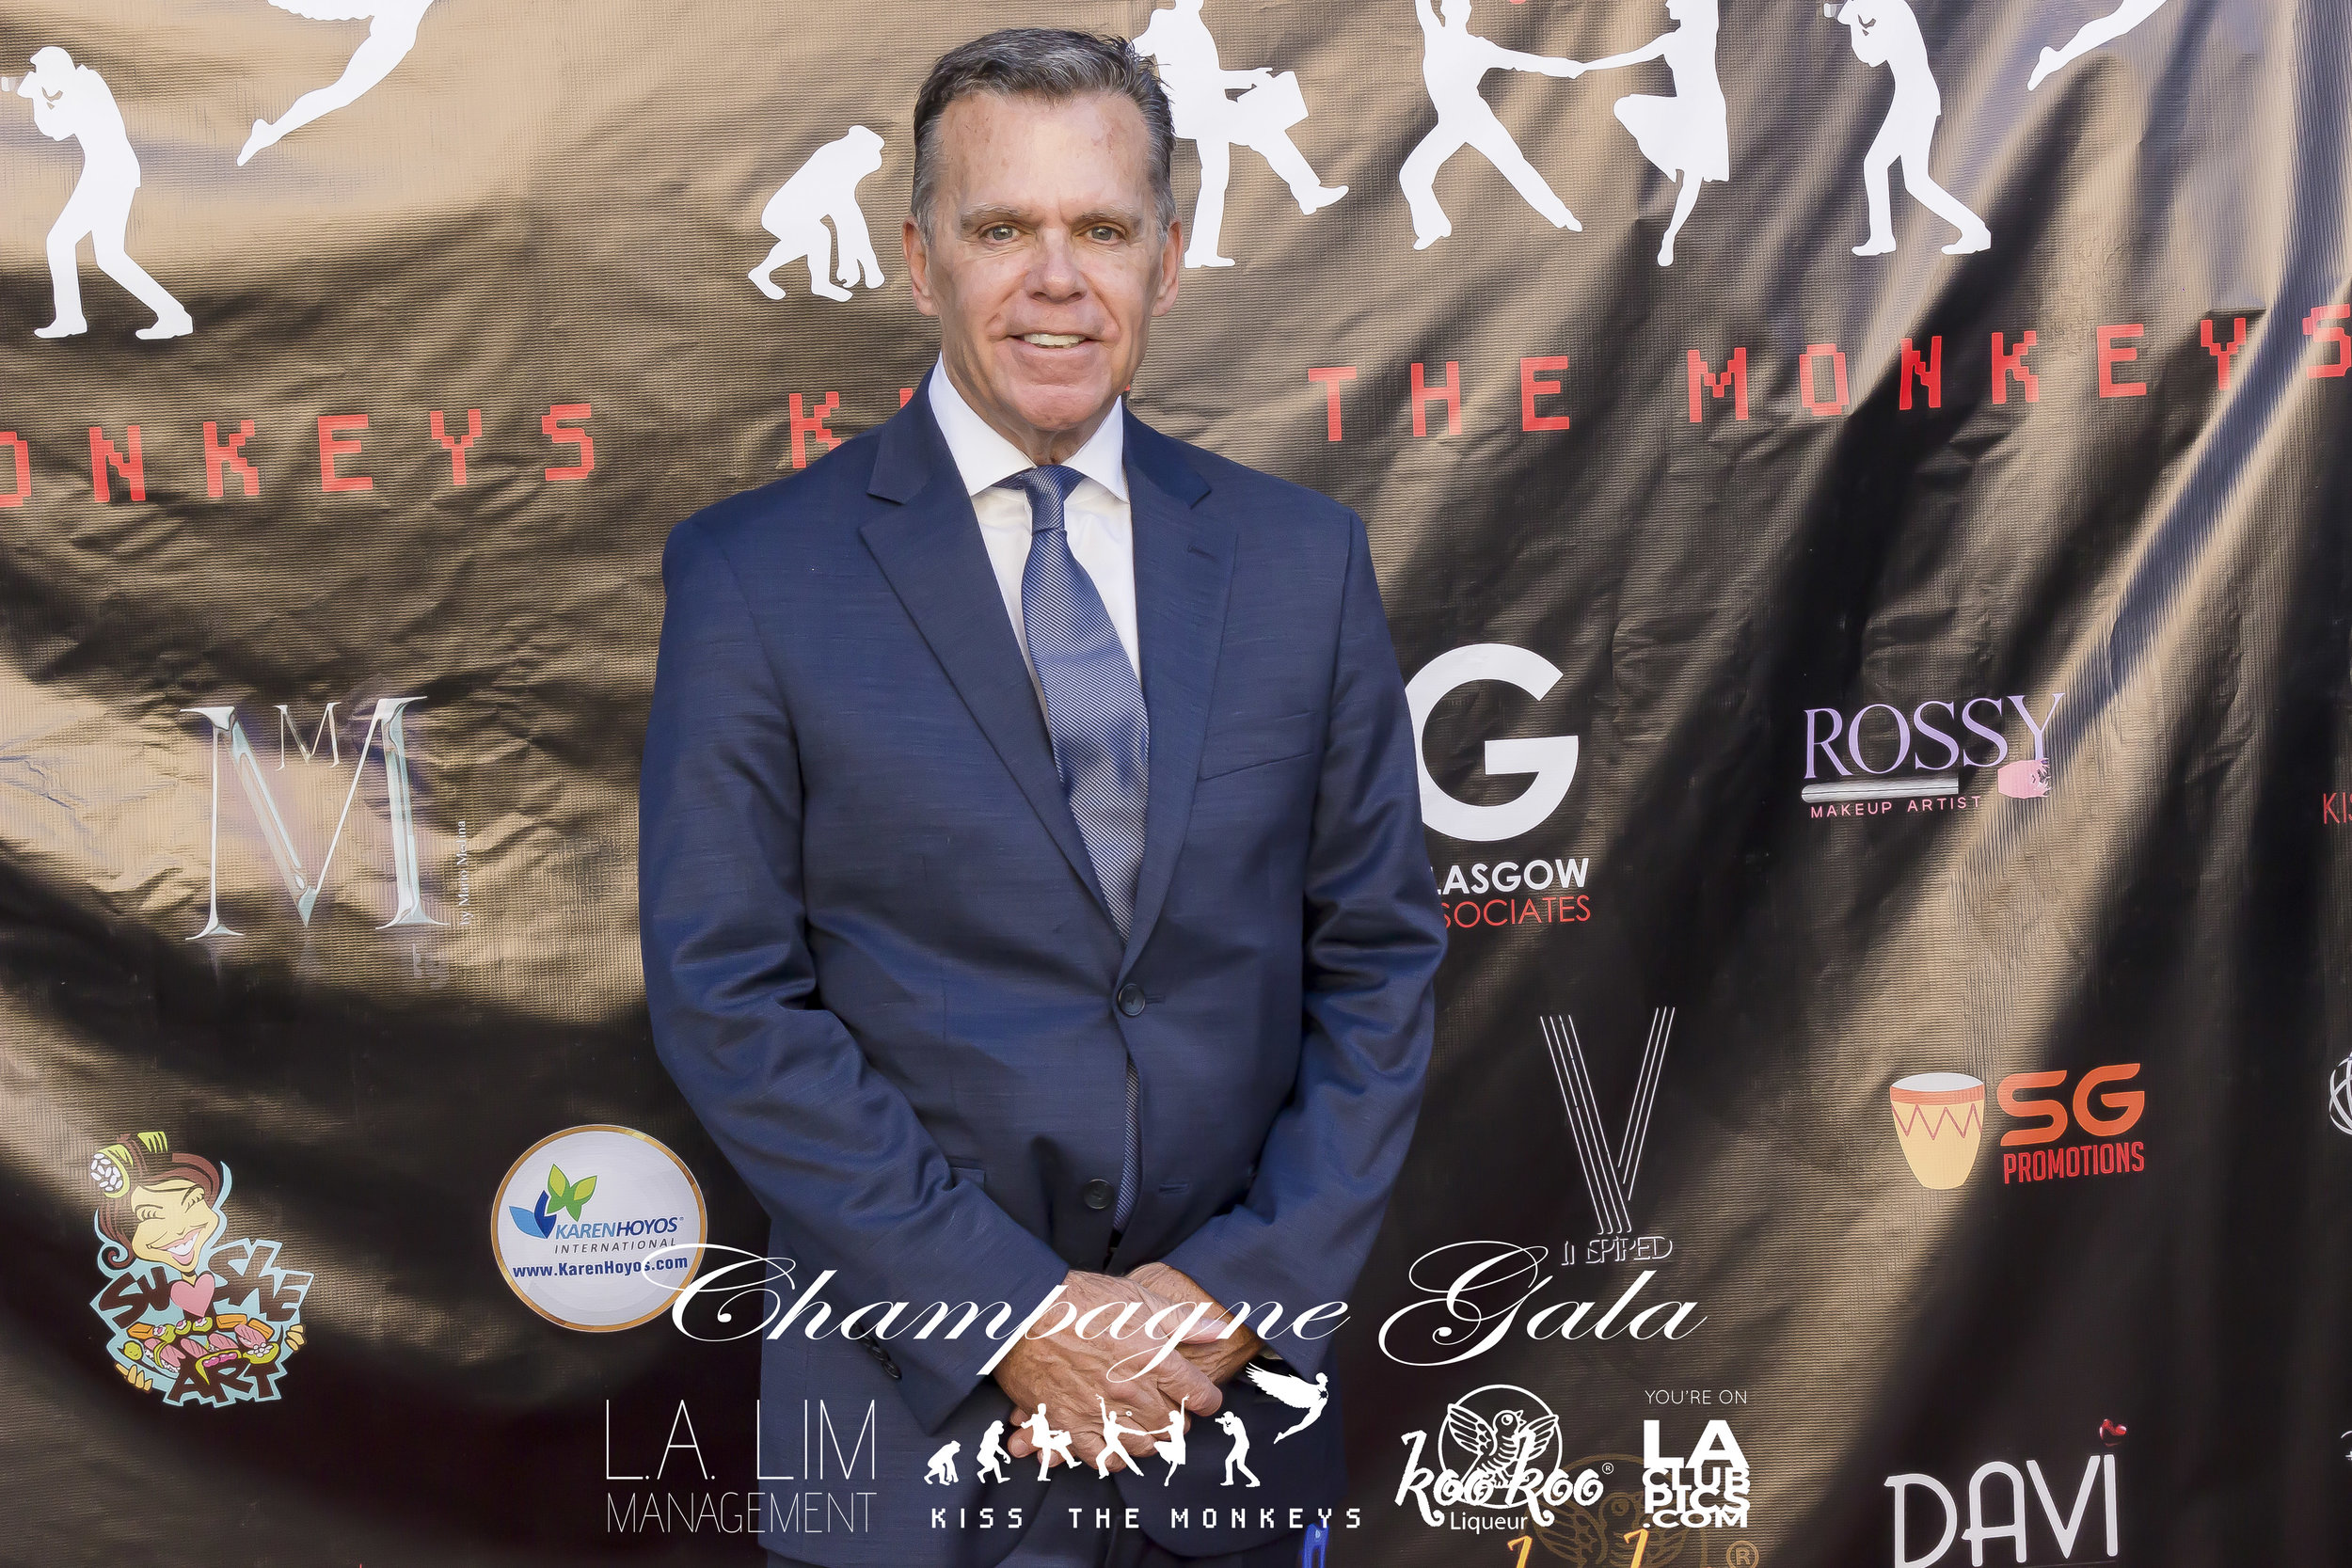 Kiss The Monkeys - Champagne Gala - 07-21-18_112.jpg